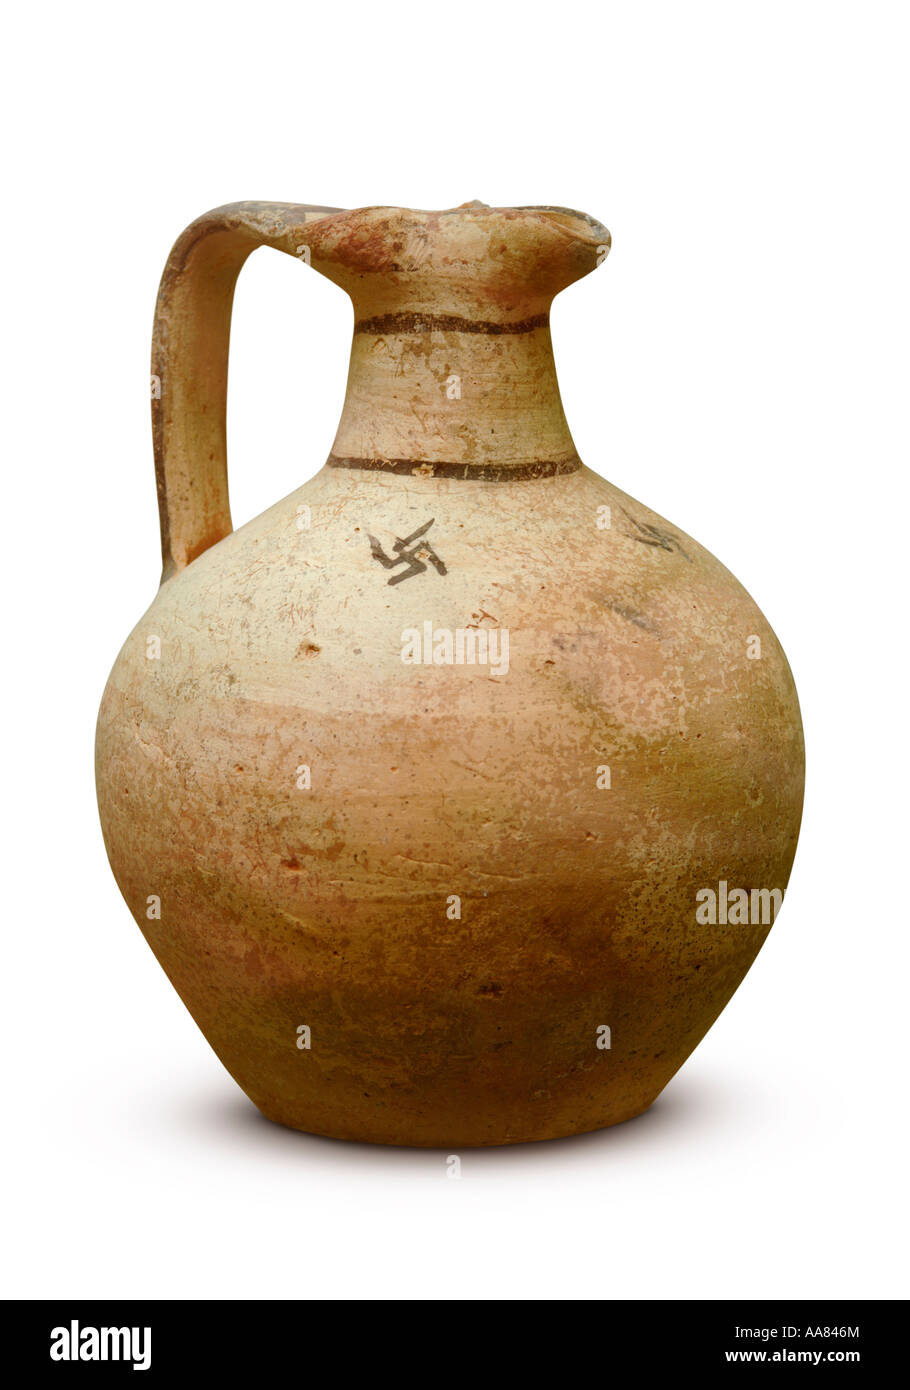 Juglet ware archaic wine jug Isolated pottery cutout - Stock Image